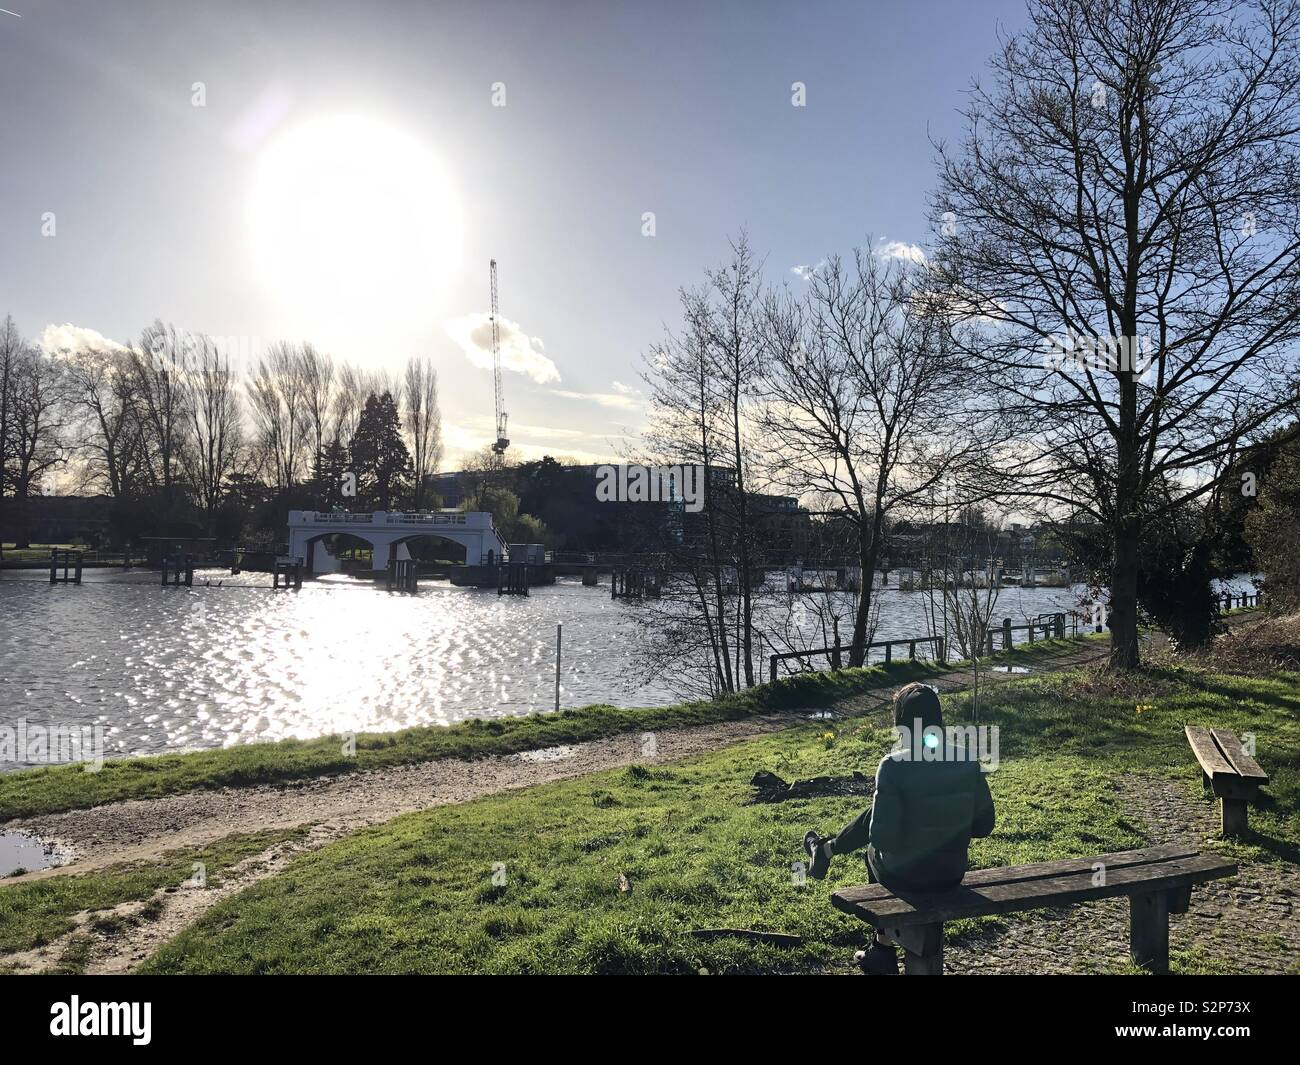 Photo was taken on a beautiful spring day on a walk along the River Thames Towpath on Kingston side looking across to Teddington Lock. - Stock Image